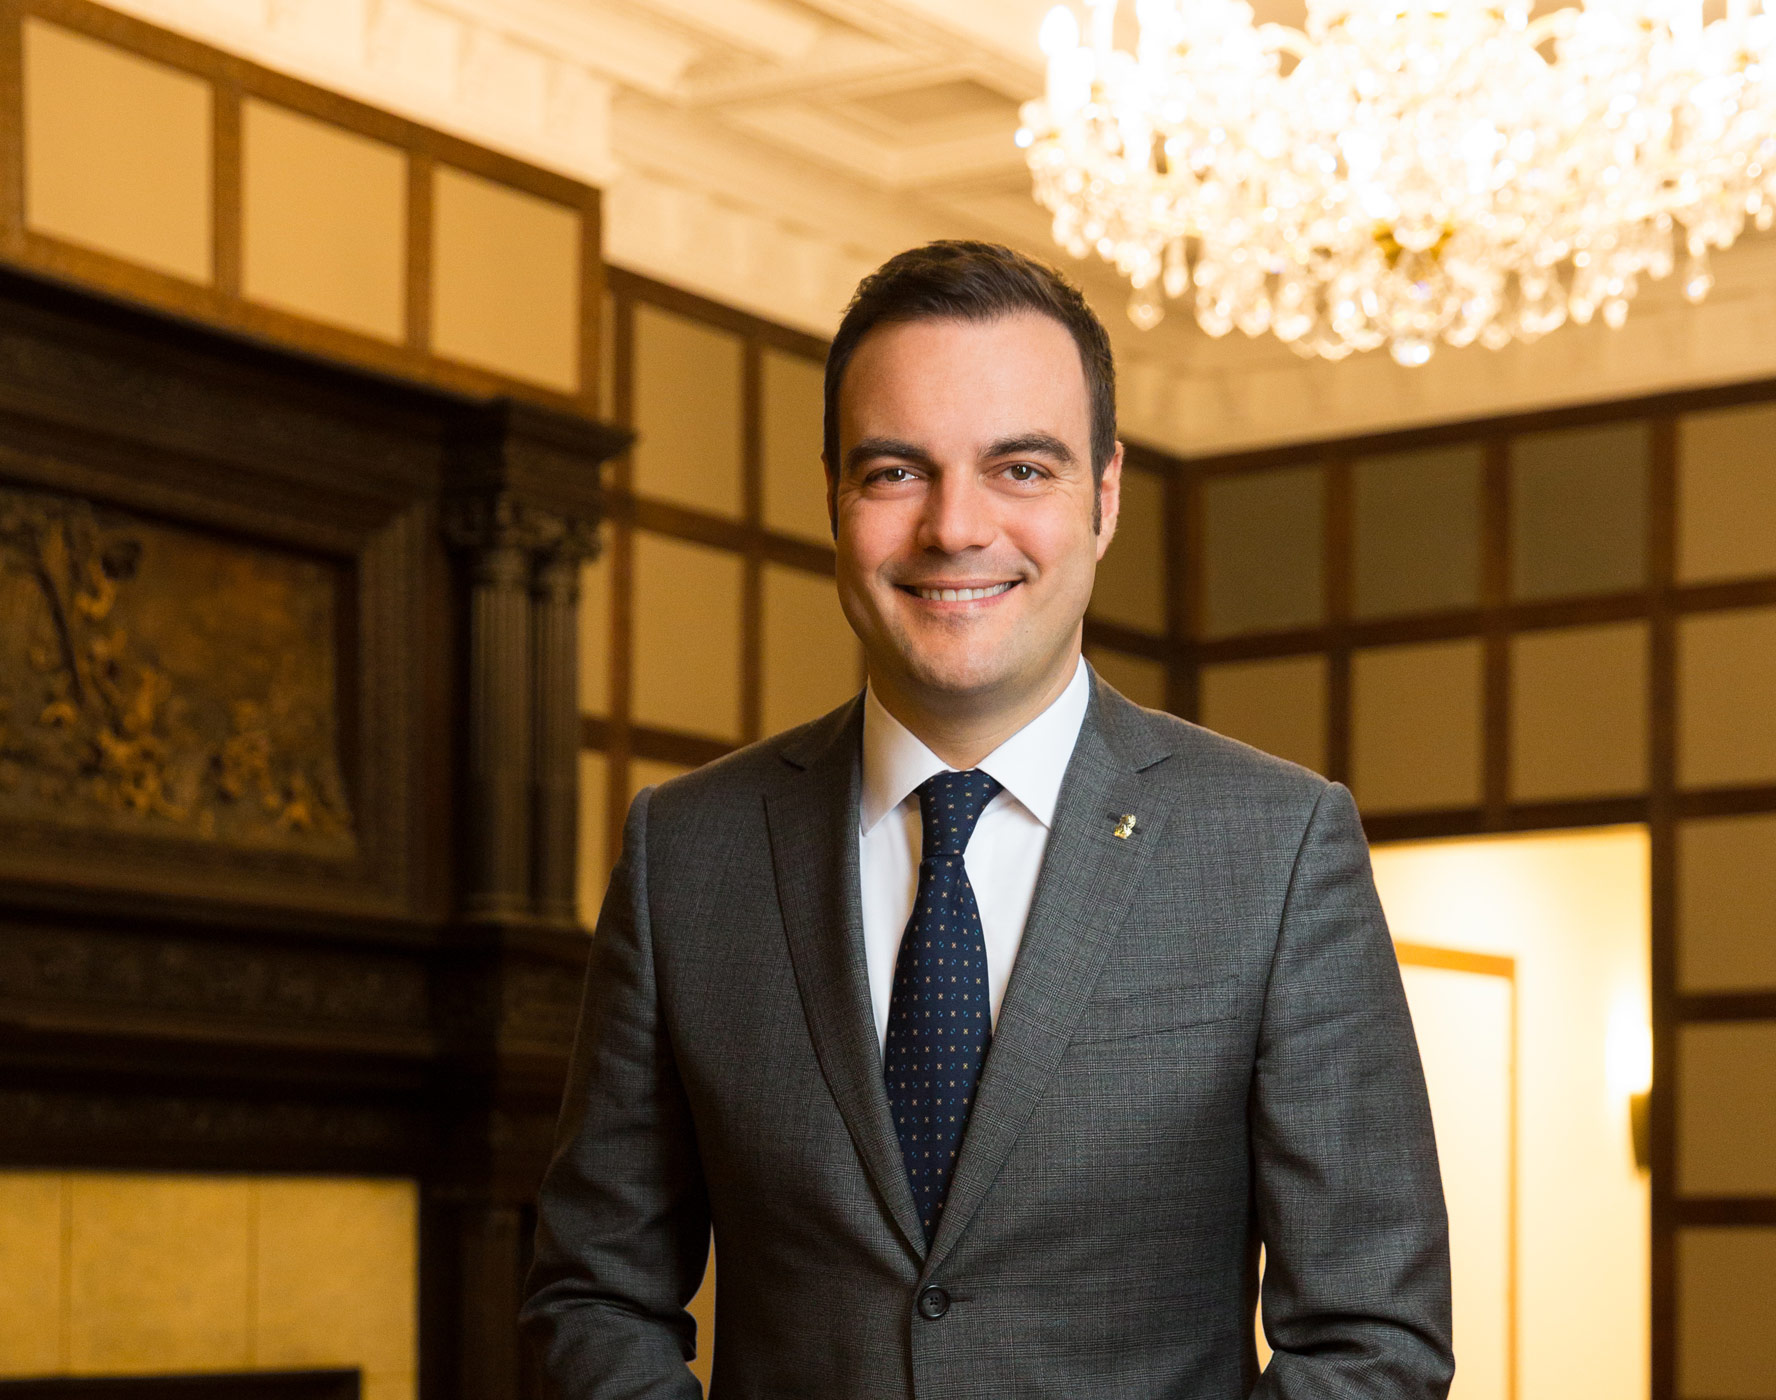 Christian_Zandonella_General_Manager_The-Ritz-Carlton-Vienna-www_photo-simonis